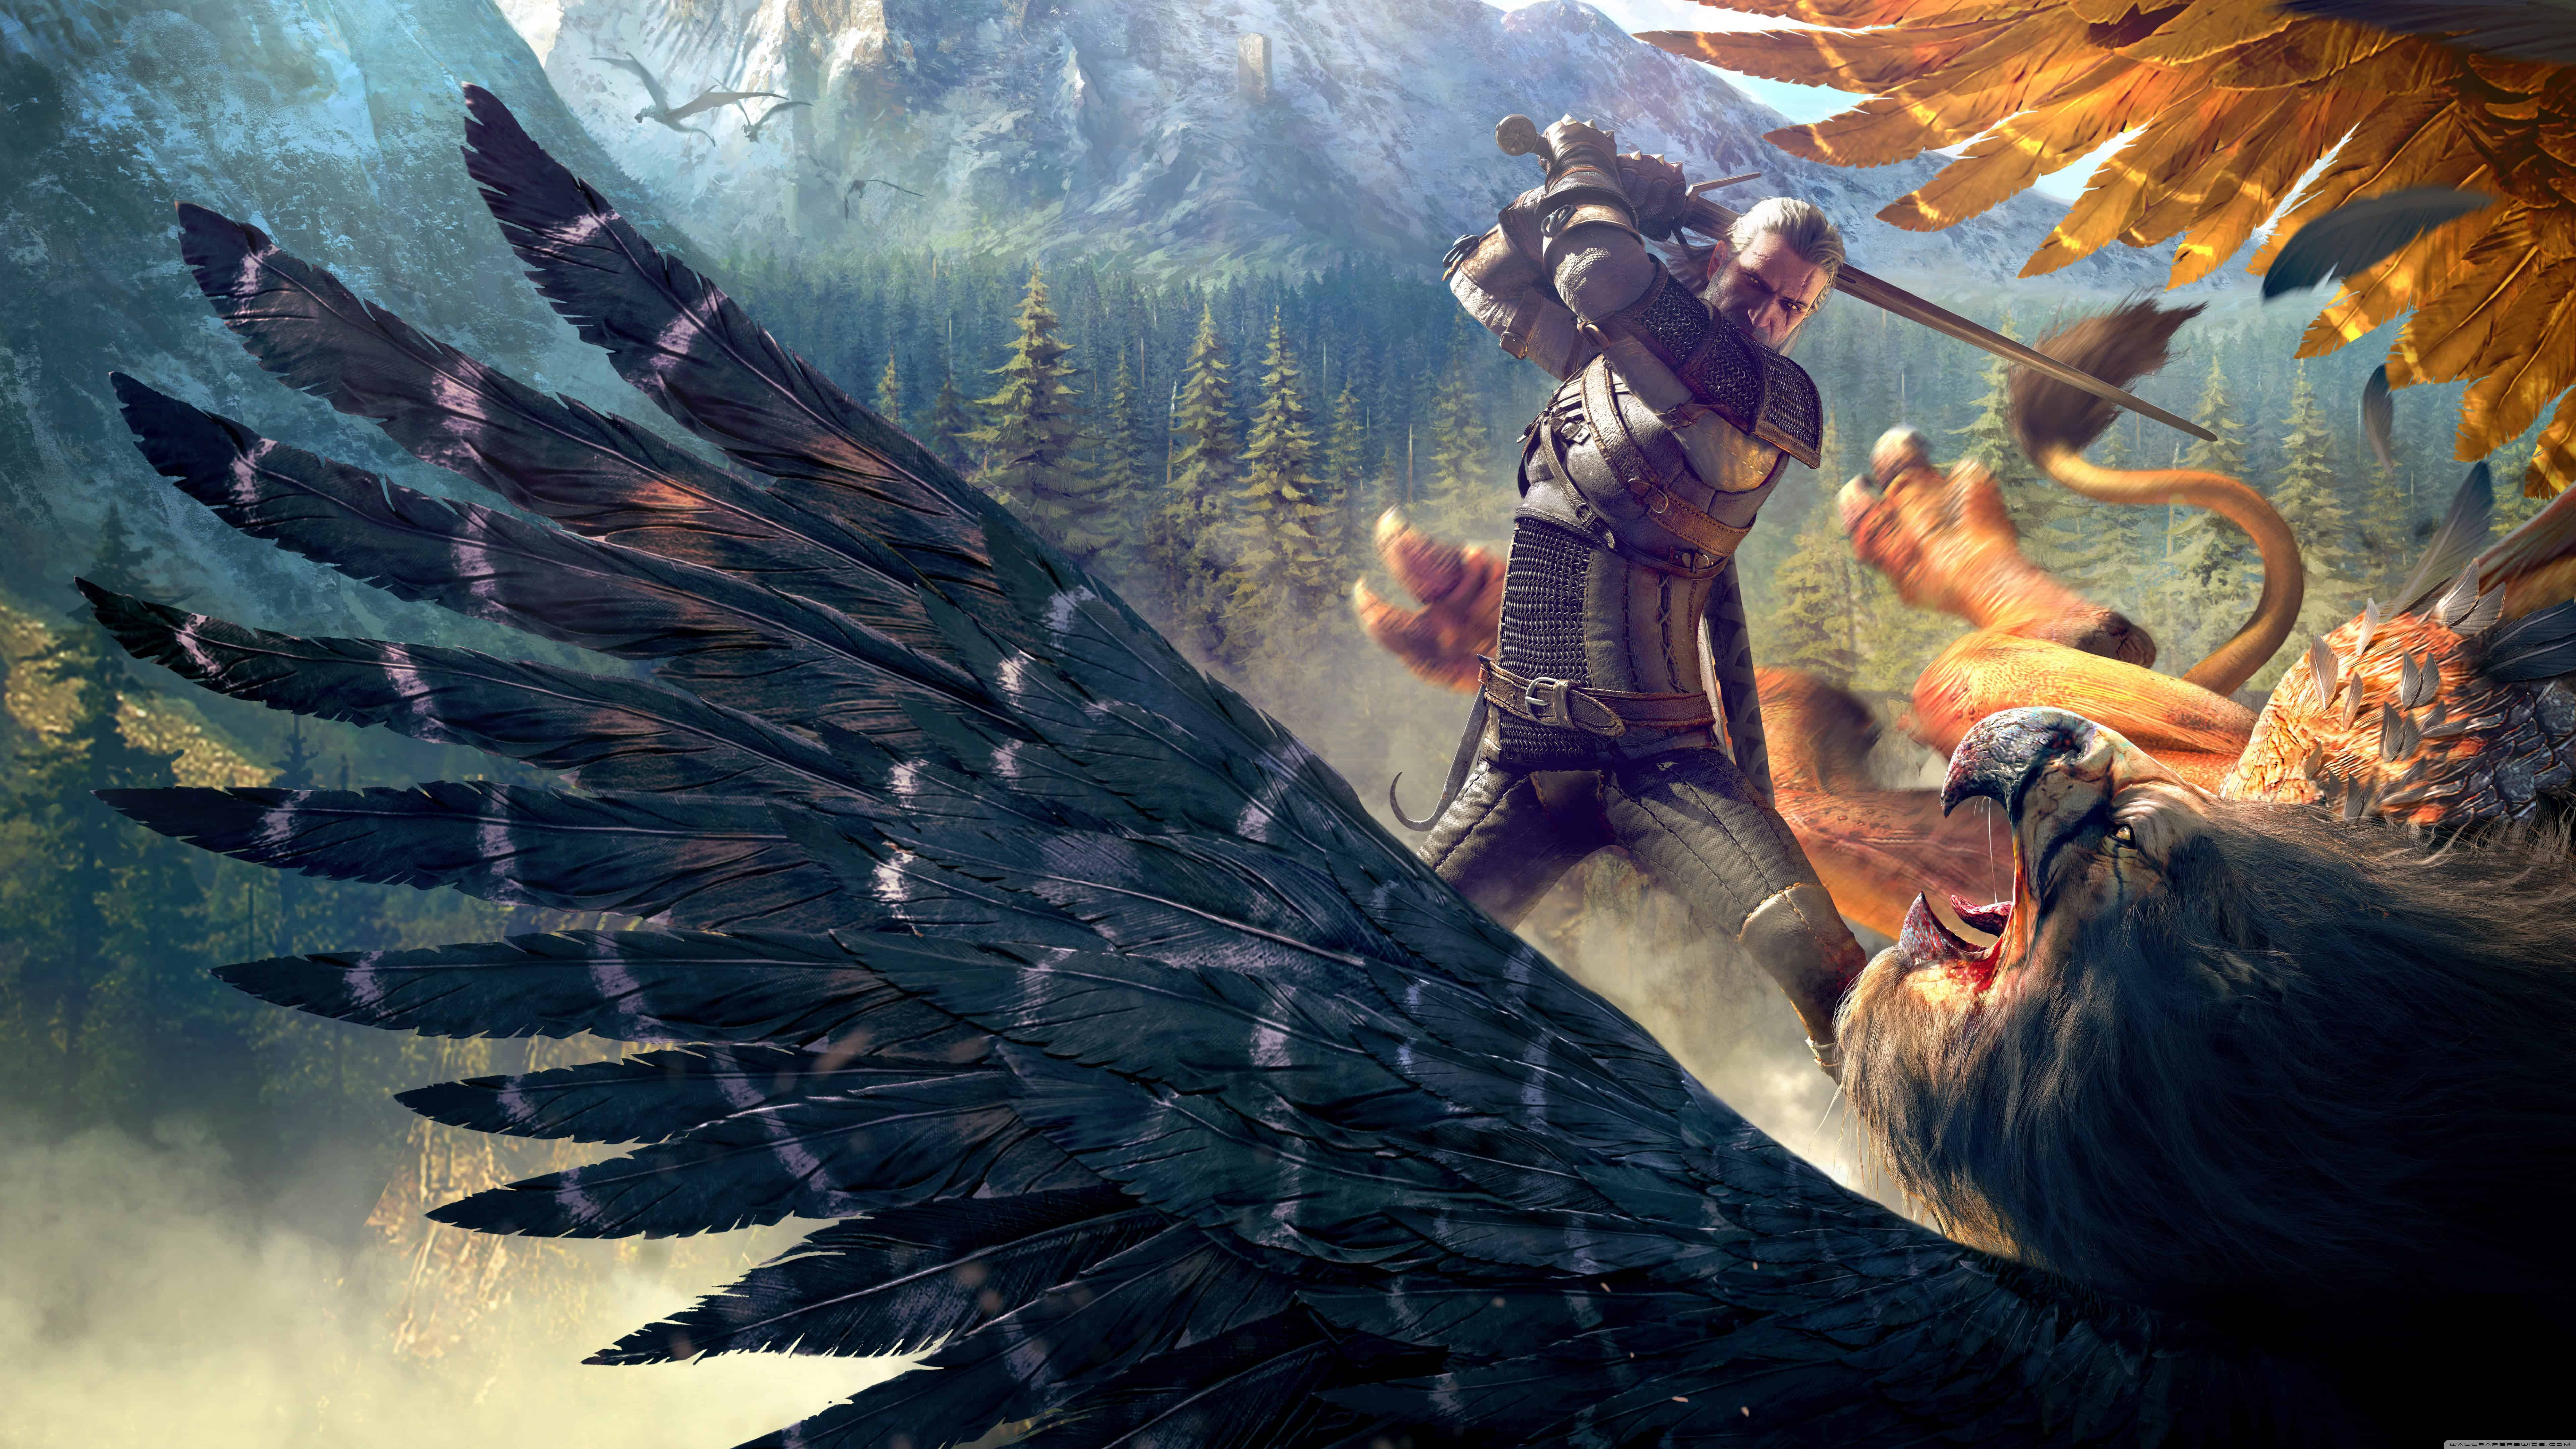 The Witcher 3 Wild Hunt Geralt And A Griffin UHD 8K Wallpaper Pixelz 7680x4320